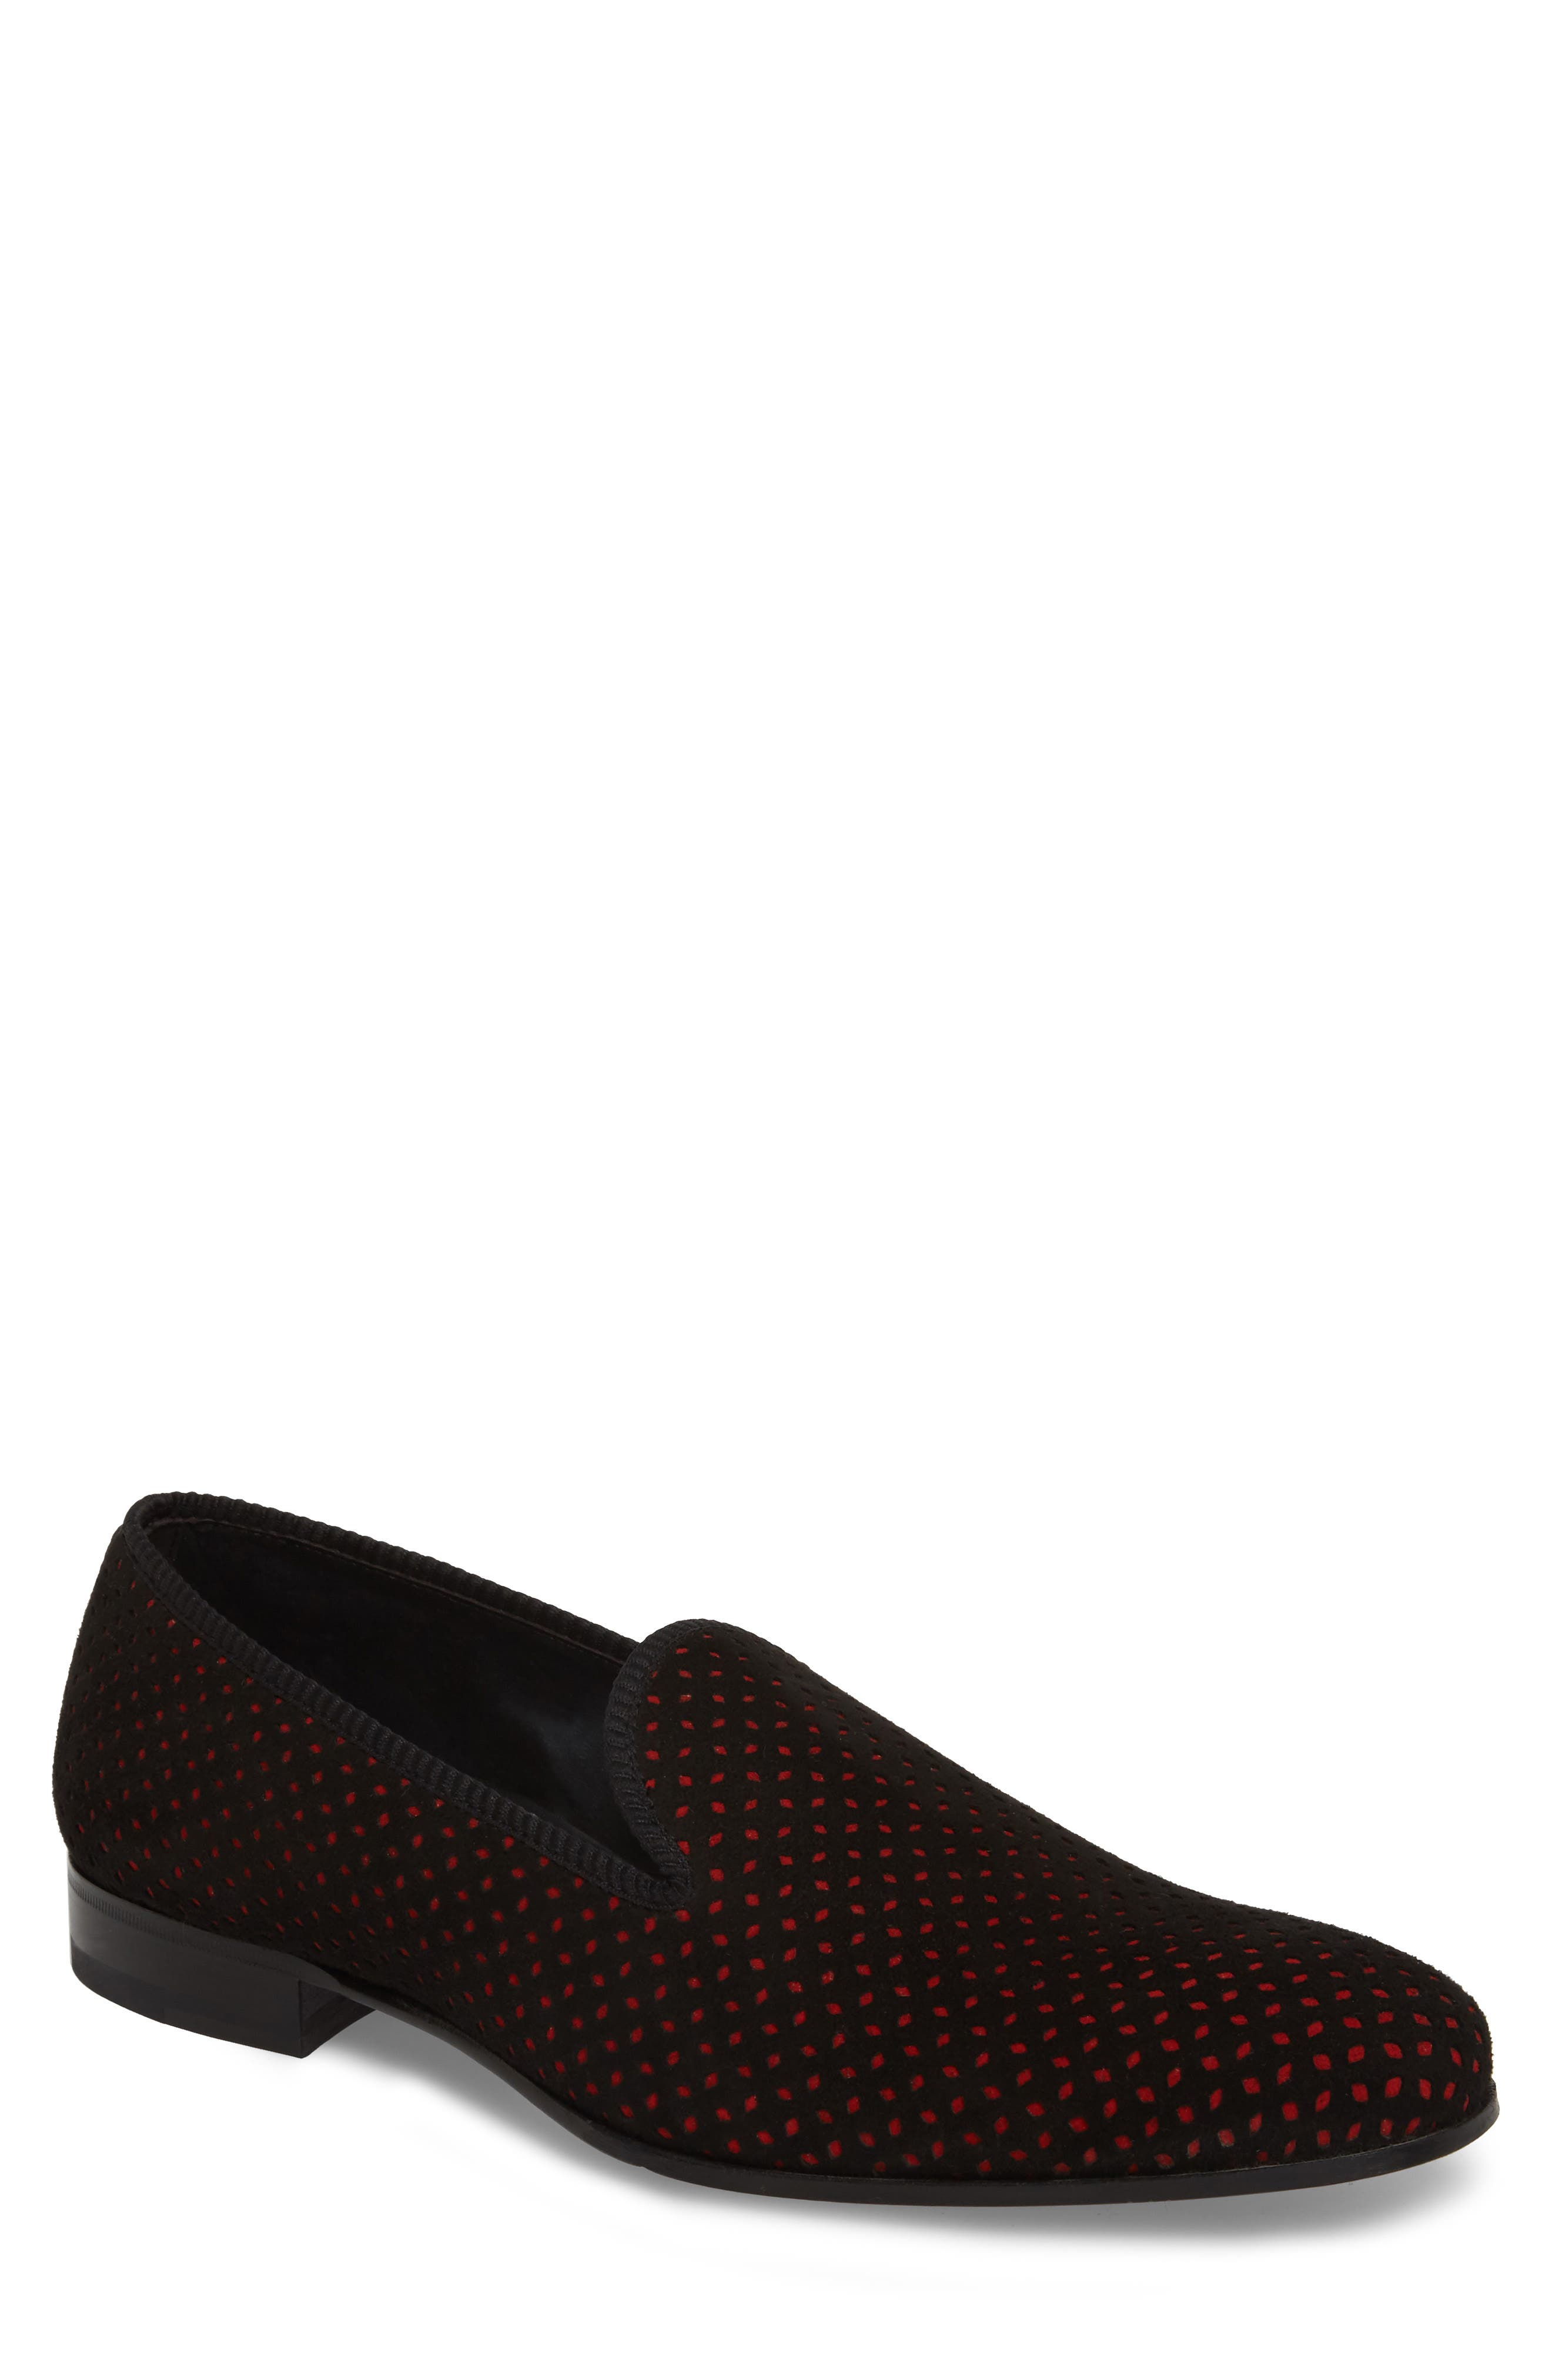 Cibeles Venetian Loafer,                         Main,                         color, BLACK/ RED SUEDE